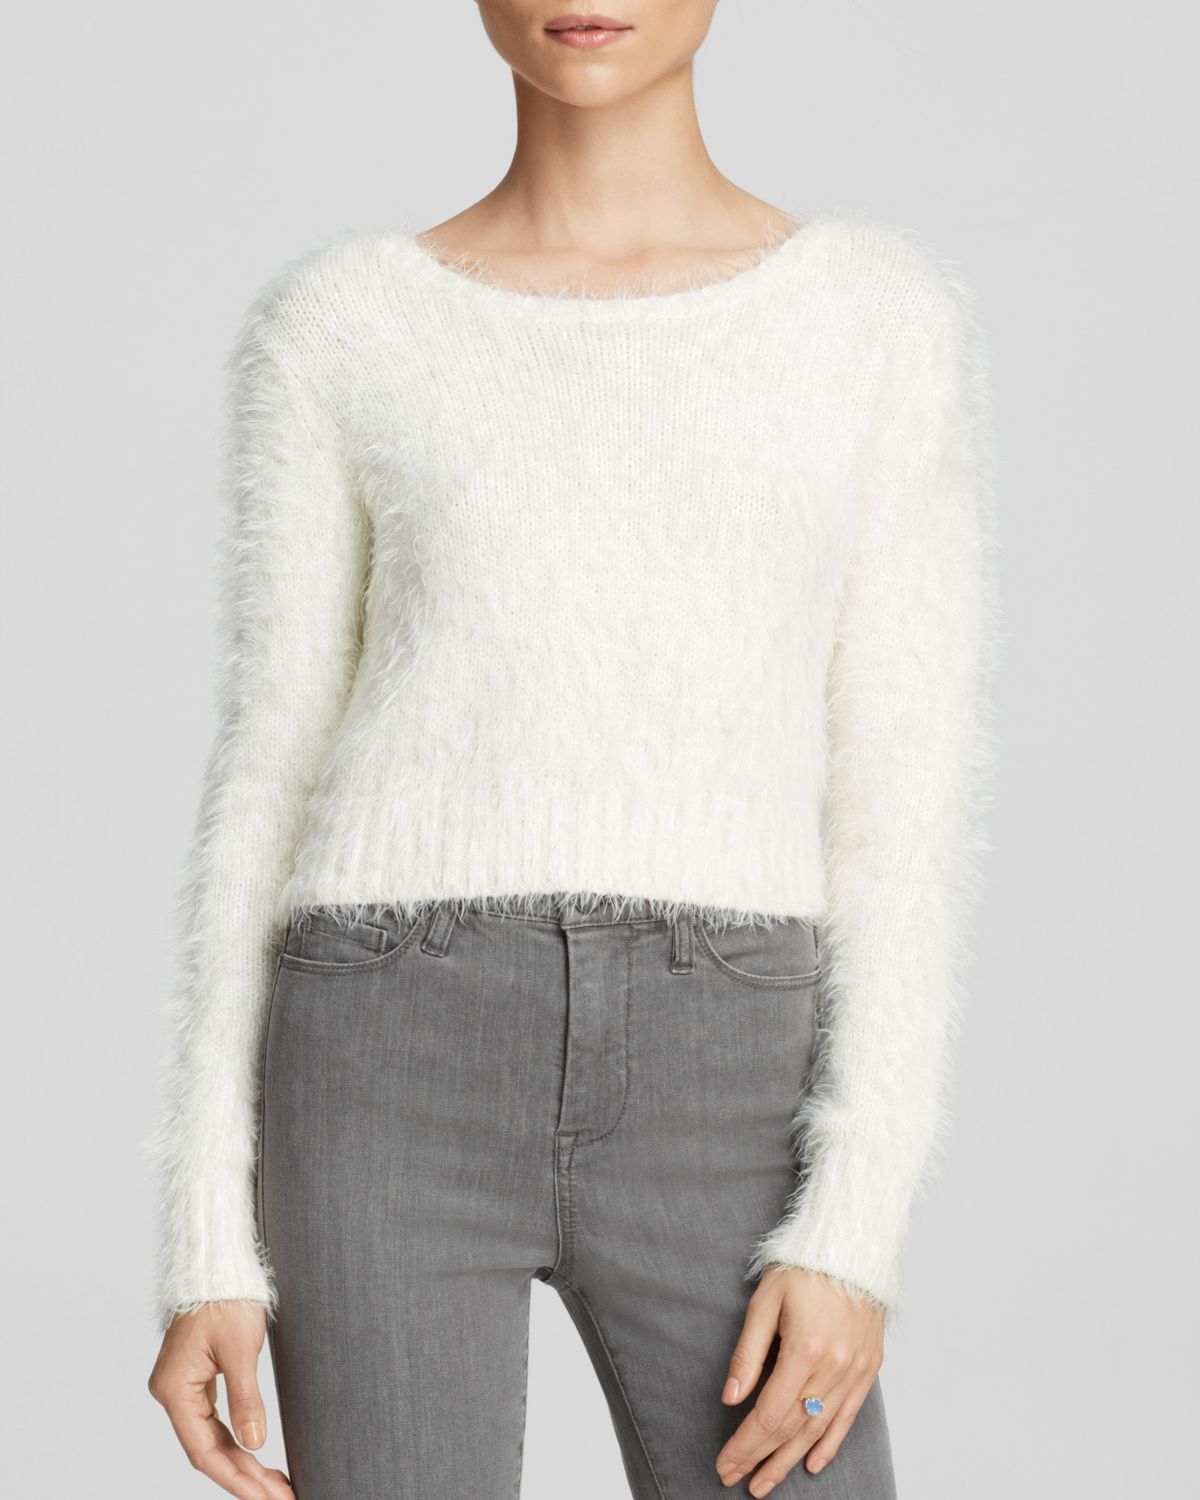 Glamorous Sweater - Bloomingdale's Exclusive Fuzzy Crop in White ...